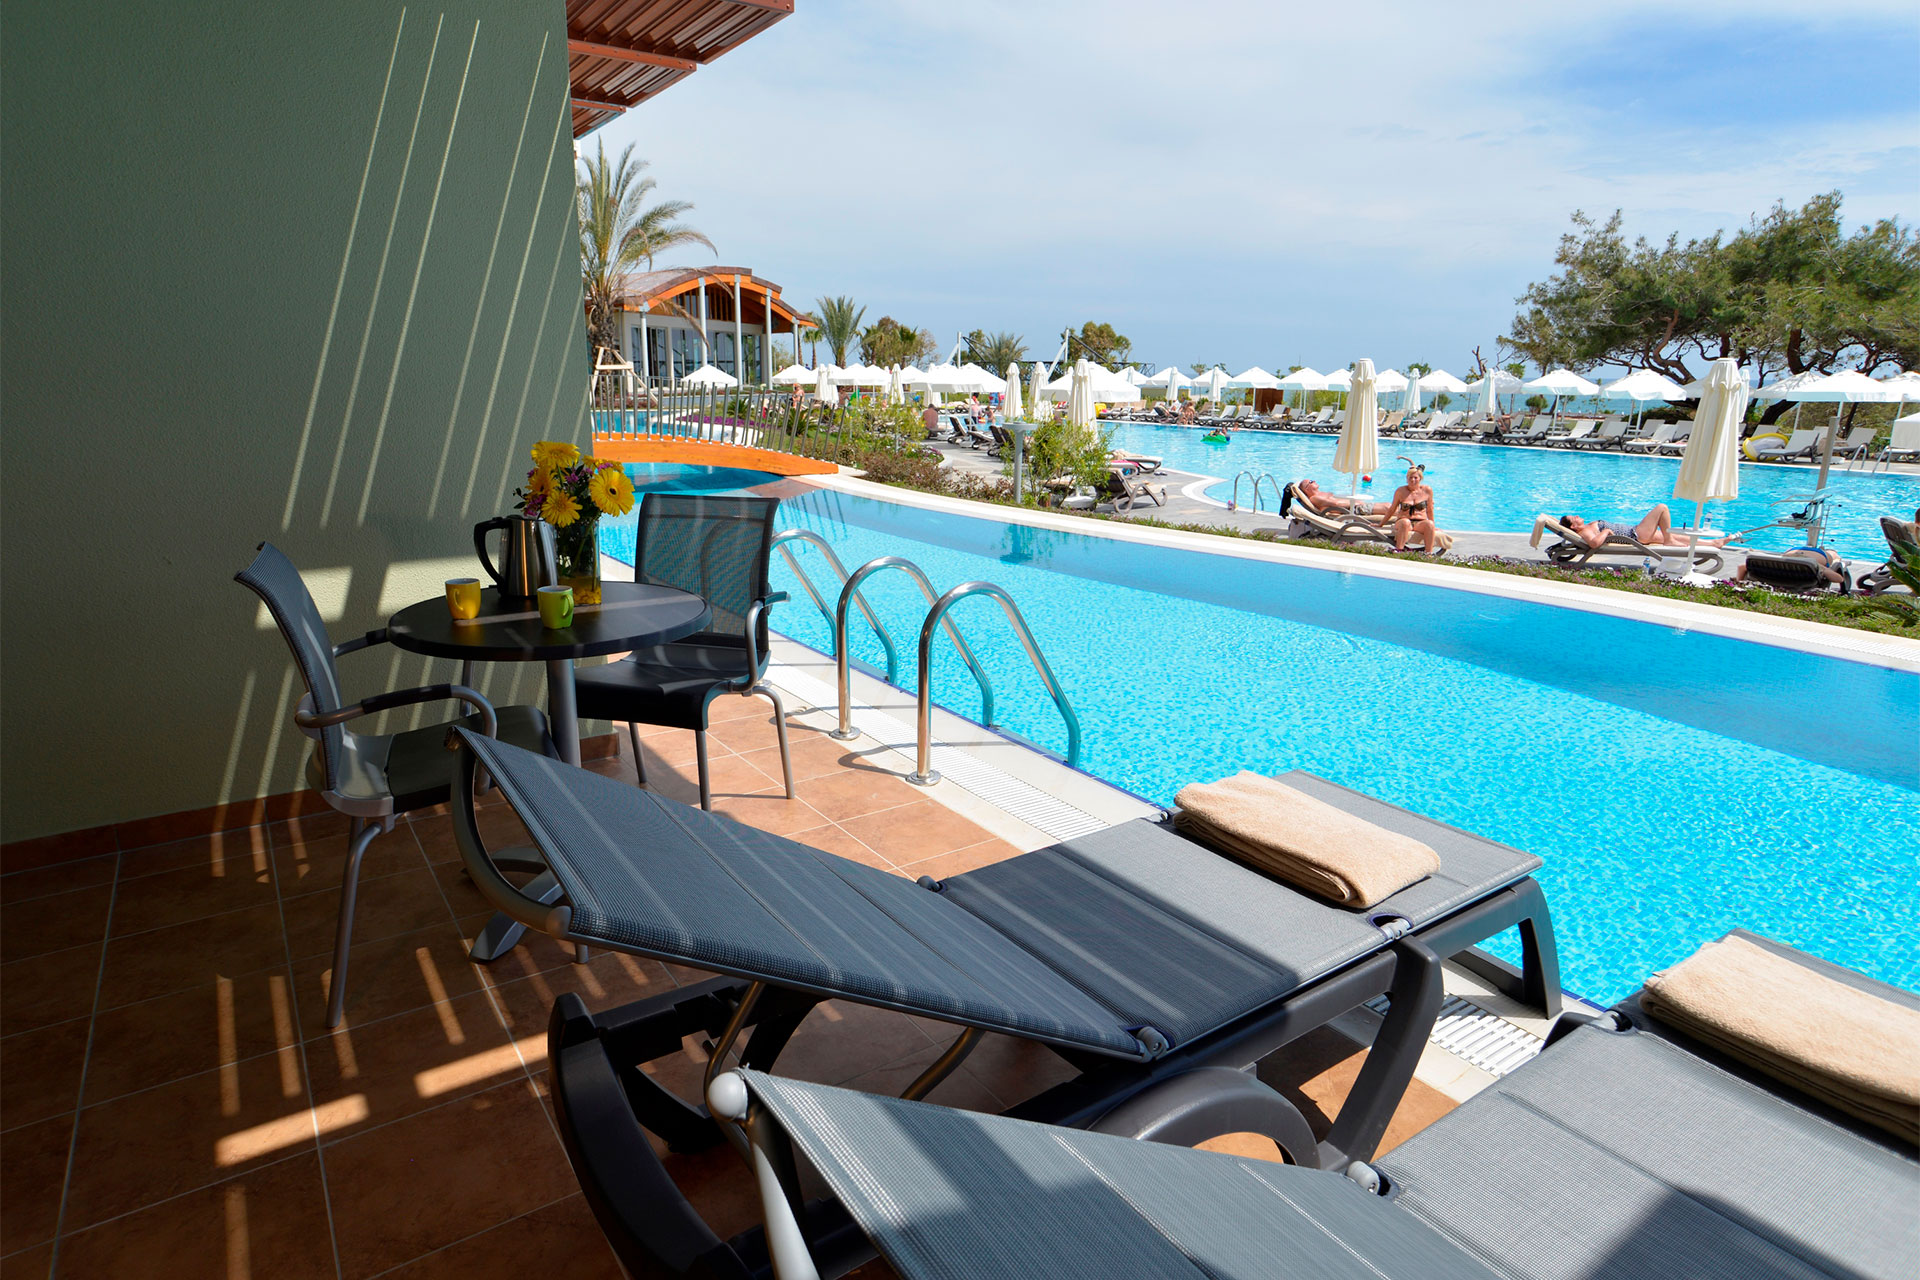 /images/tui-sensatori-resort-barut-sorgun/rooms/swimup-arakapi/sorgun-rooms-adult-swimup-arakapili-01.jpg